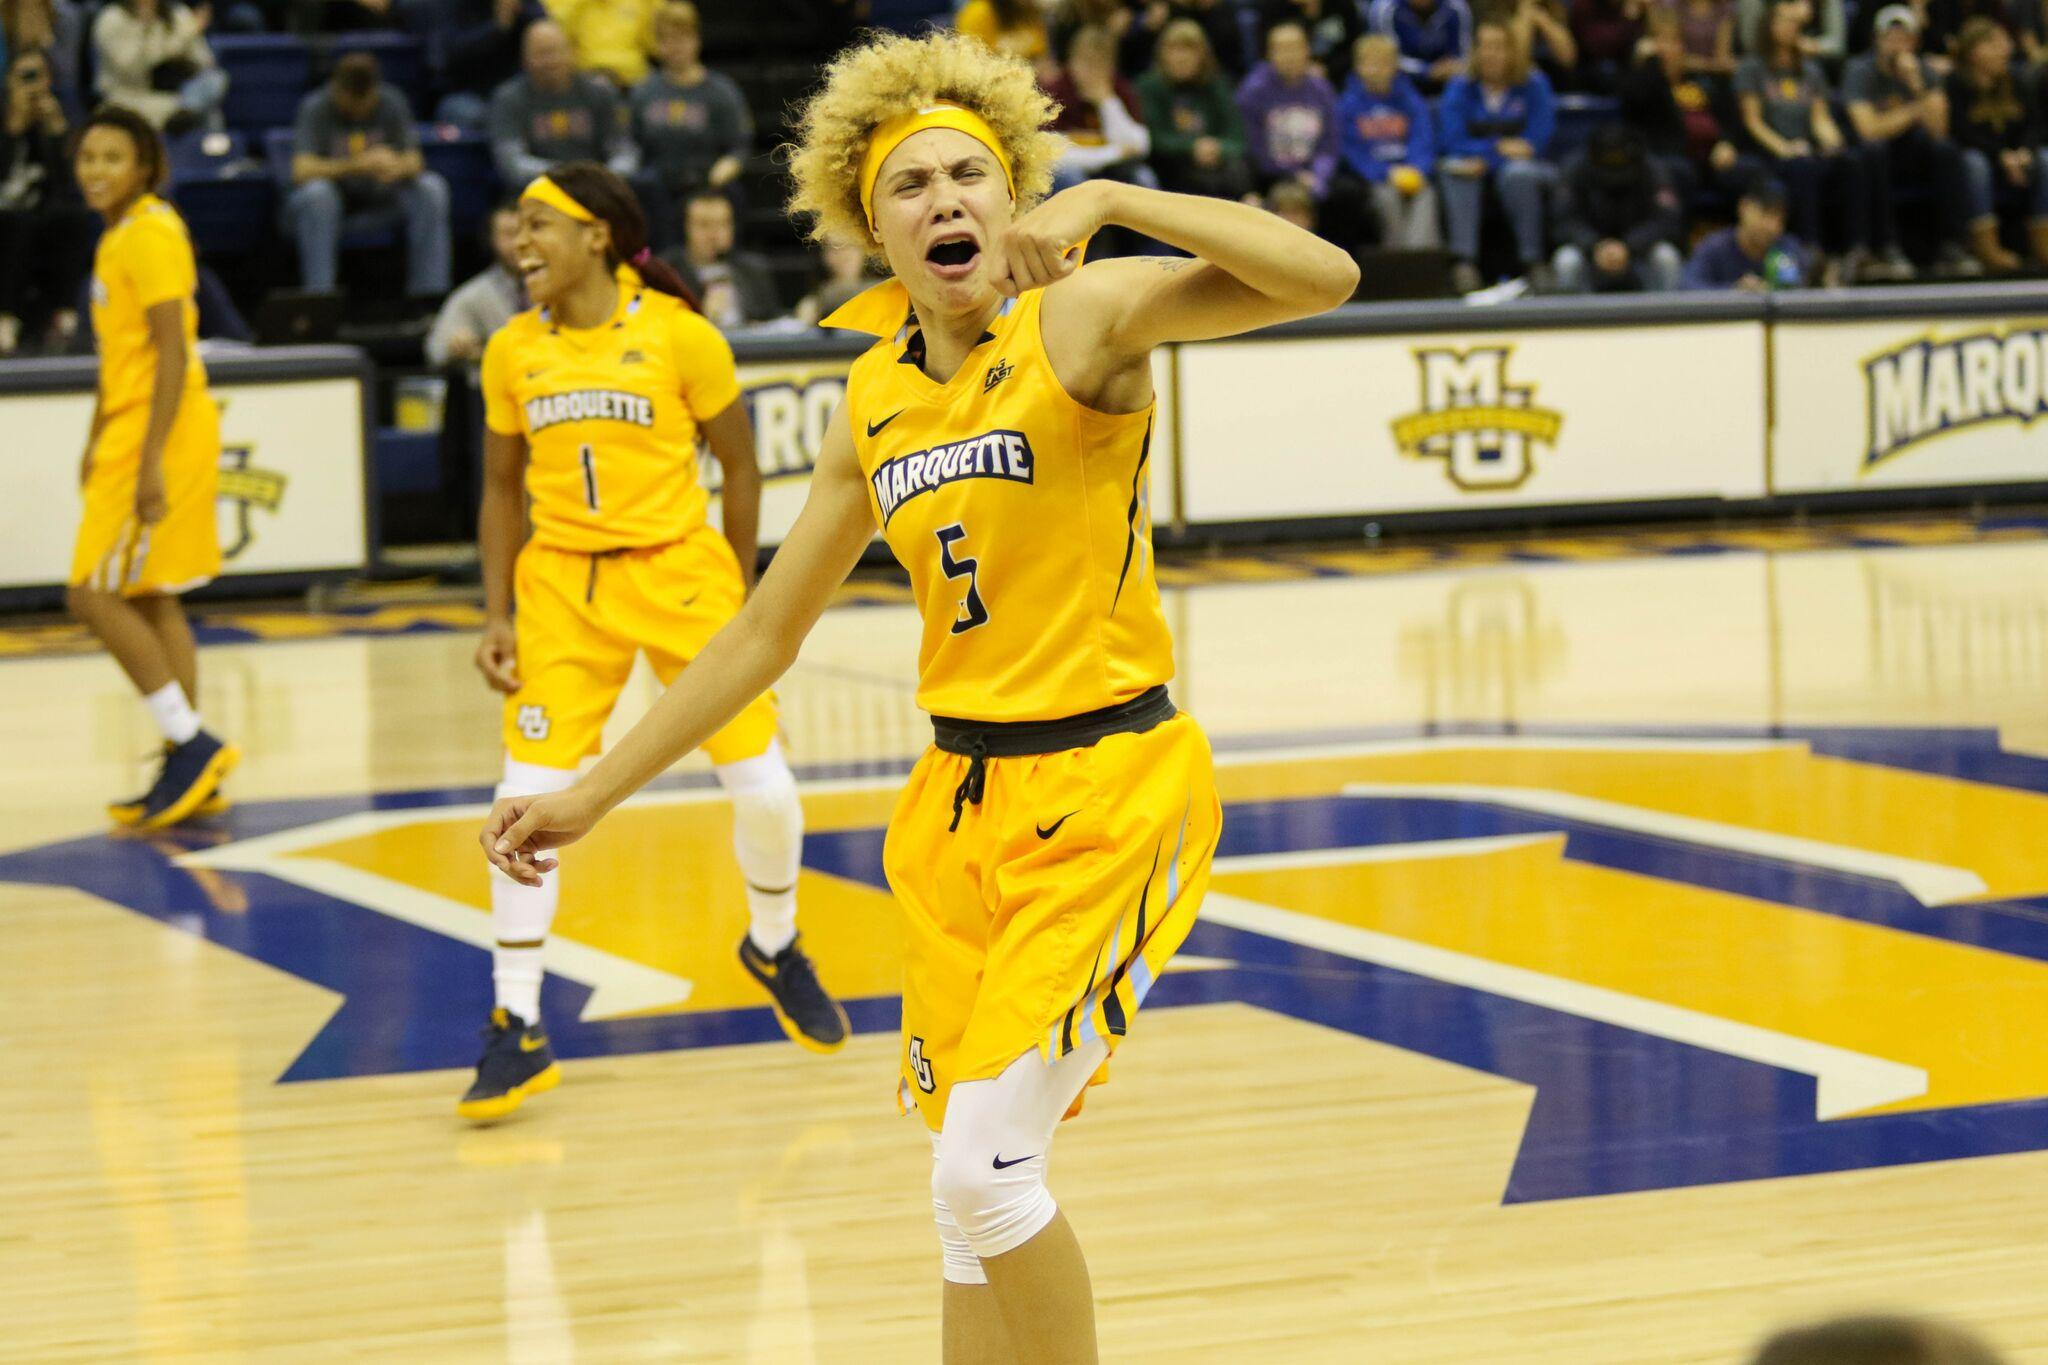 Natisha Hiedeman celebrates one of her 5 three-pointers in Marquette's 75-63 victory over Arizona State.